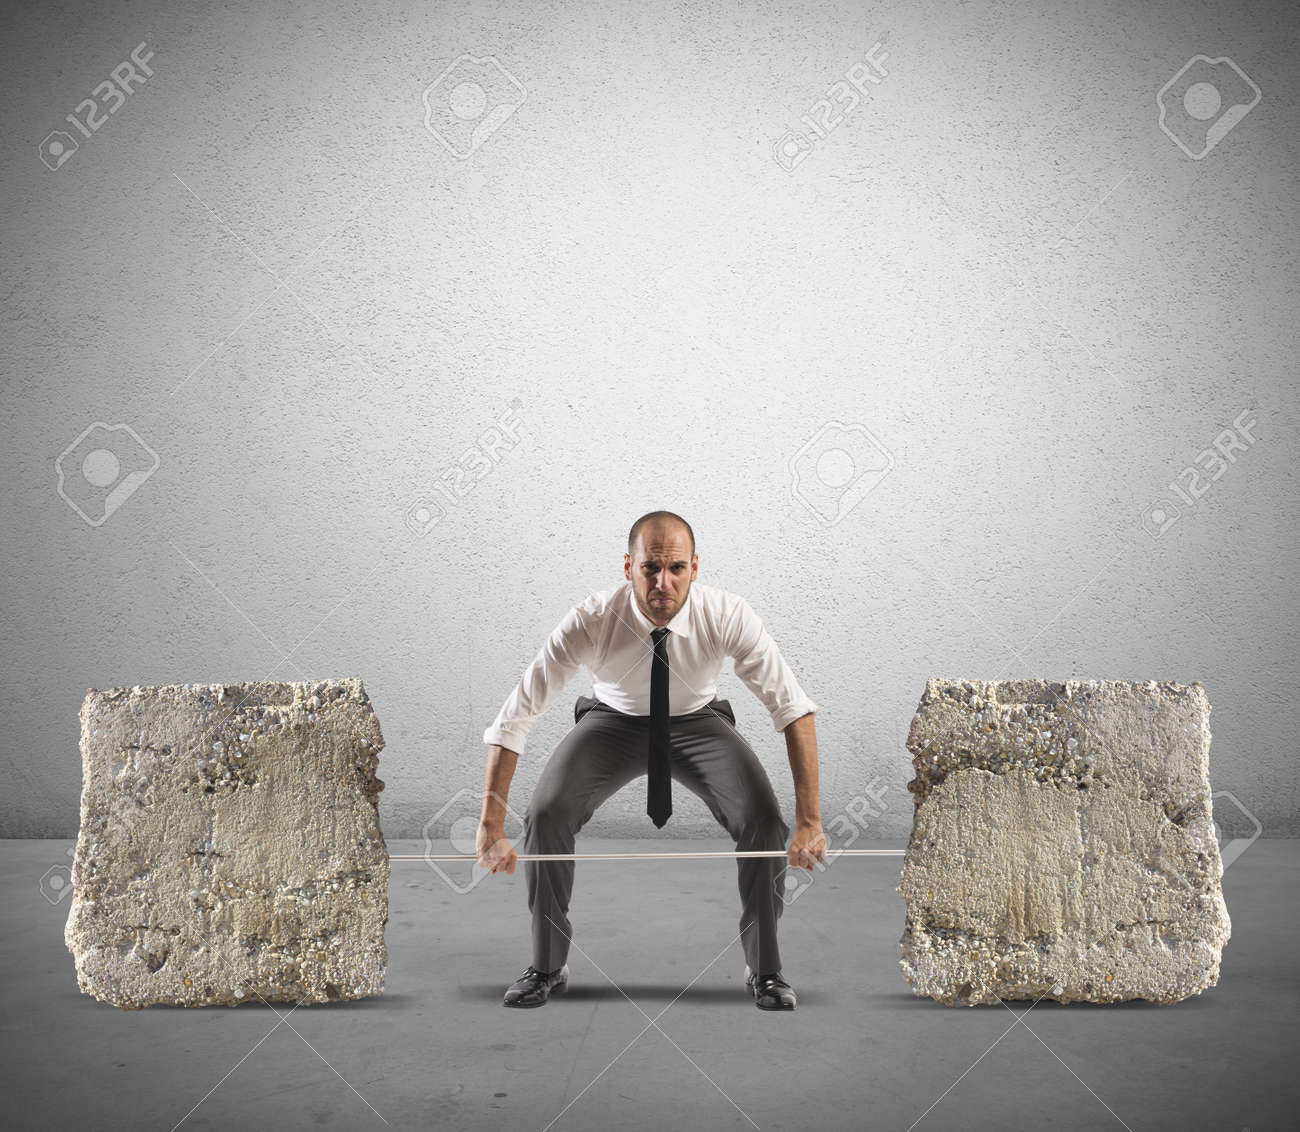 Athlete business man with barbell and heavy stones Stock Photo - 23048258